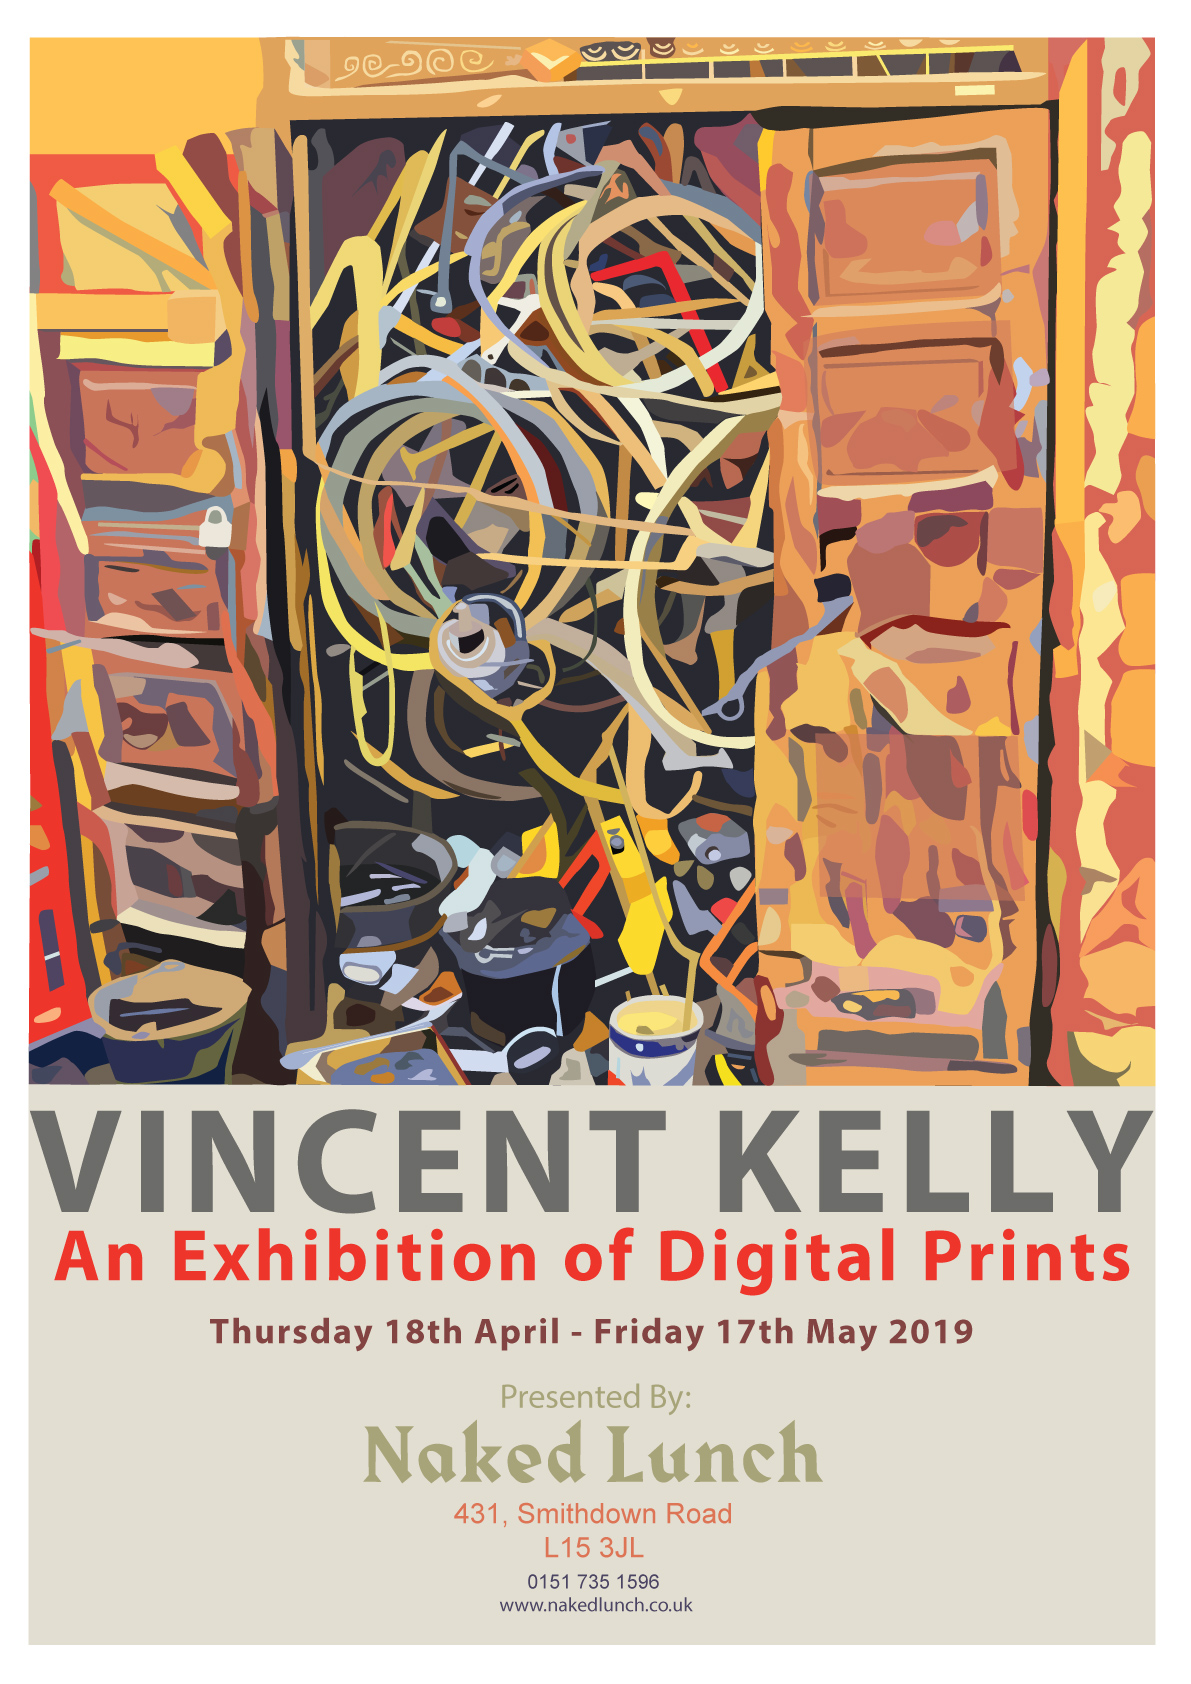 Naked Lunch: An Exhibition of Digital Prints by Vincent Kelly